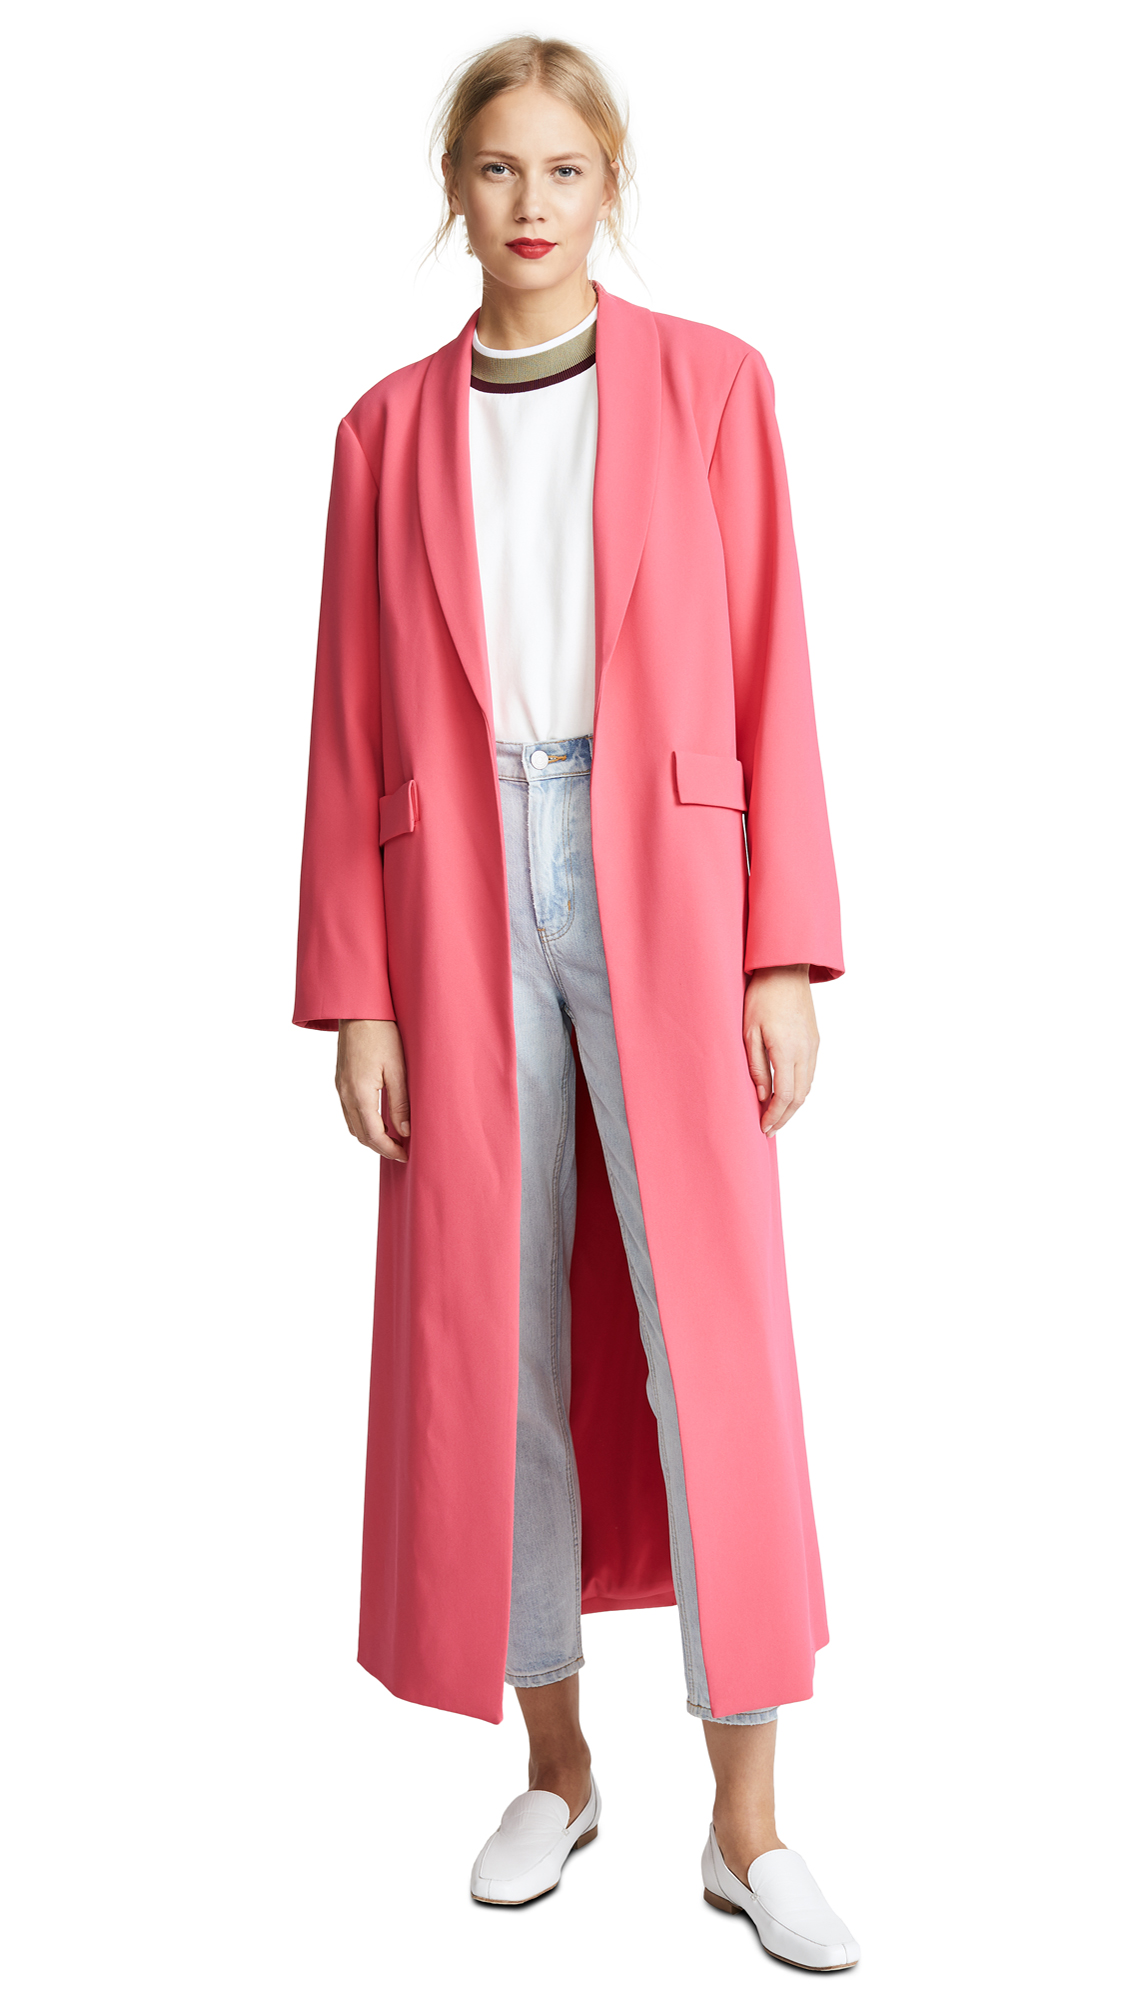 alice + olivia Angela Long Coat In Watermelon